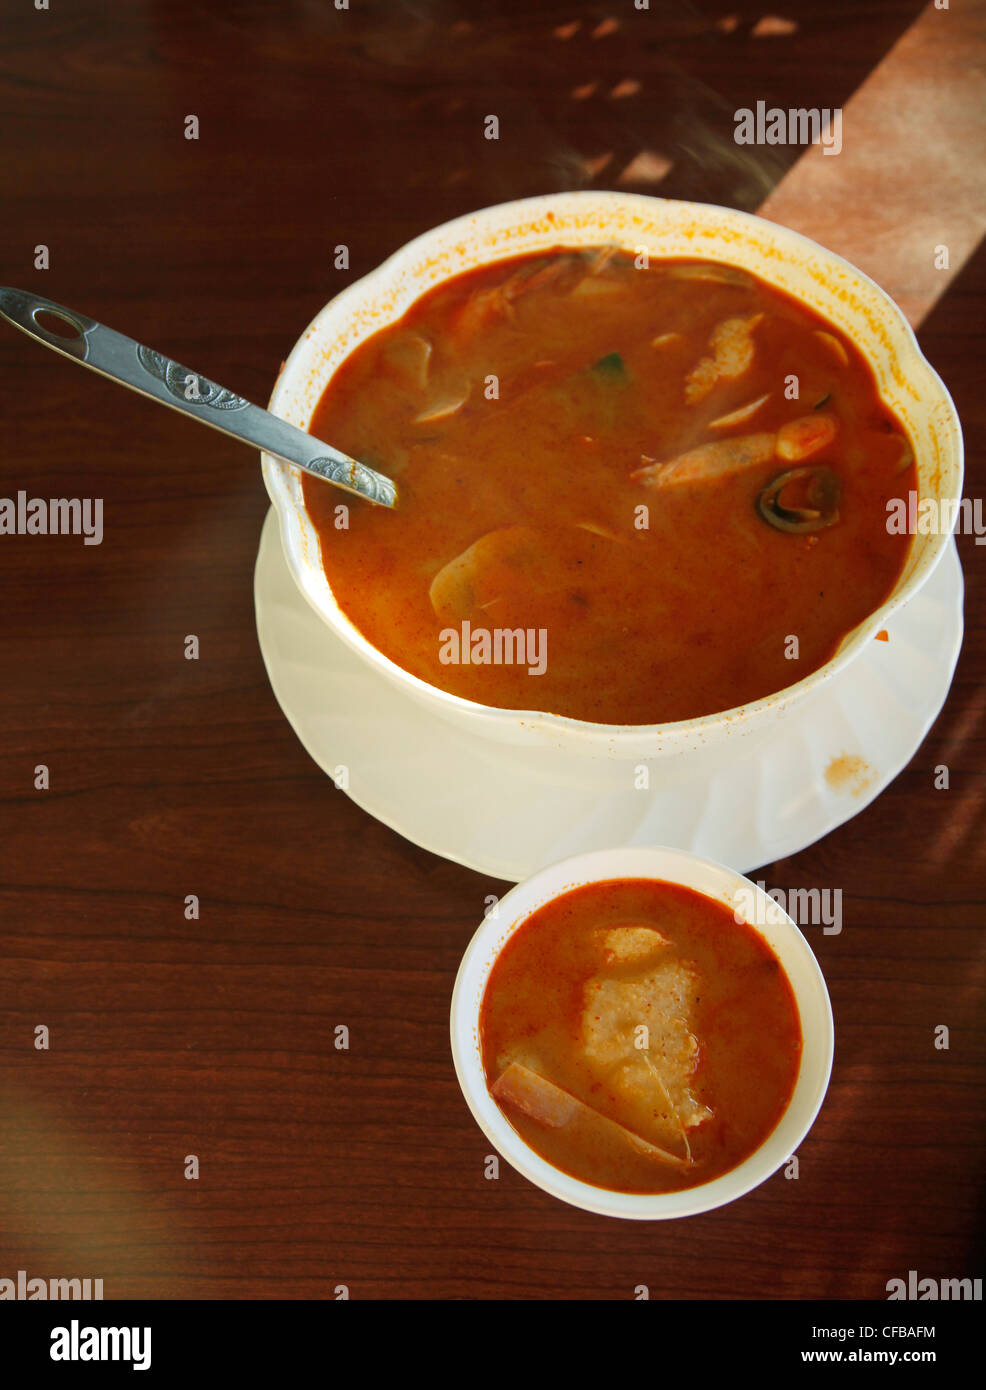 Traditional Tom Yum soup served in a restaurant in Malaysia - Stock Image